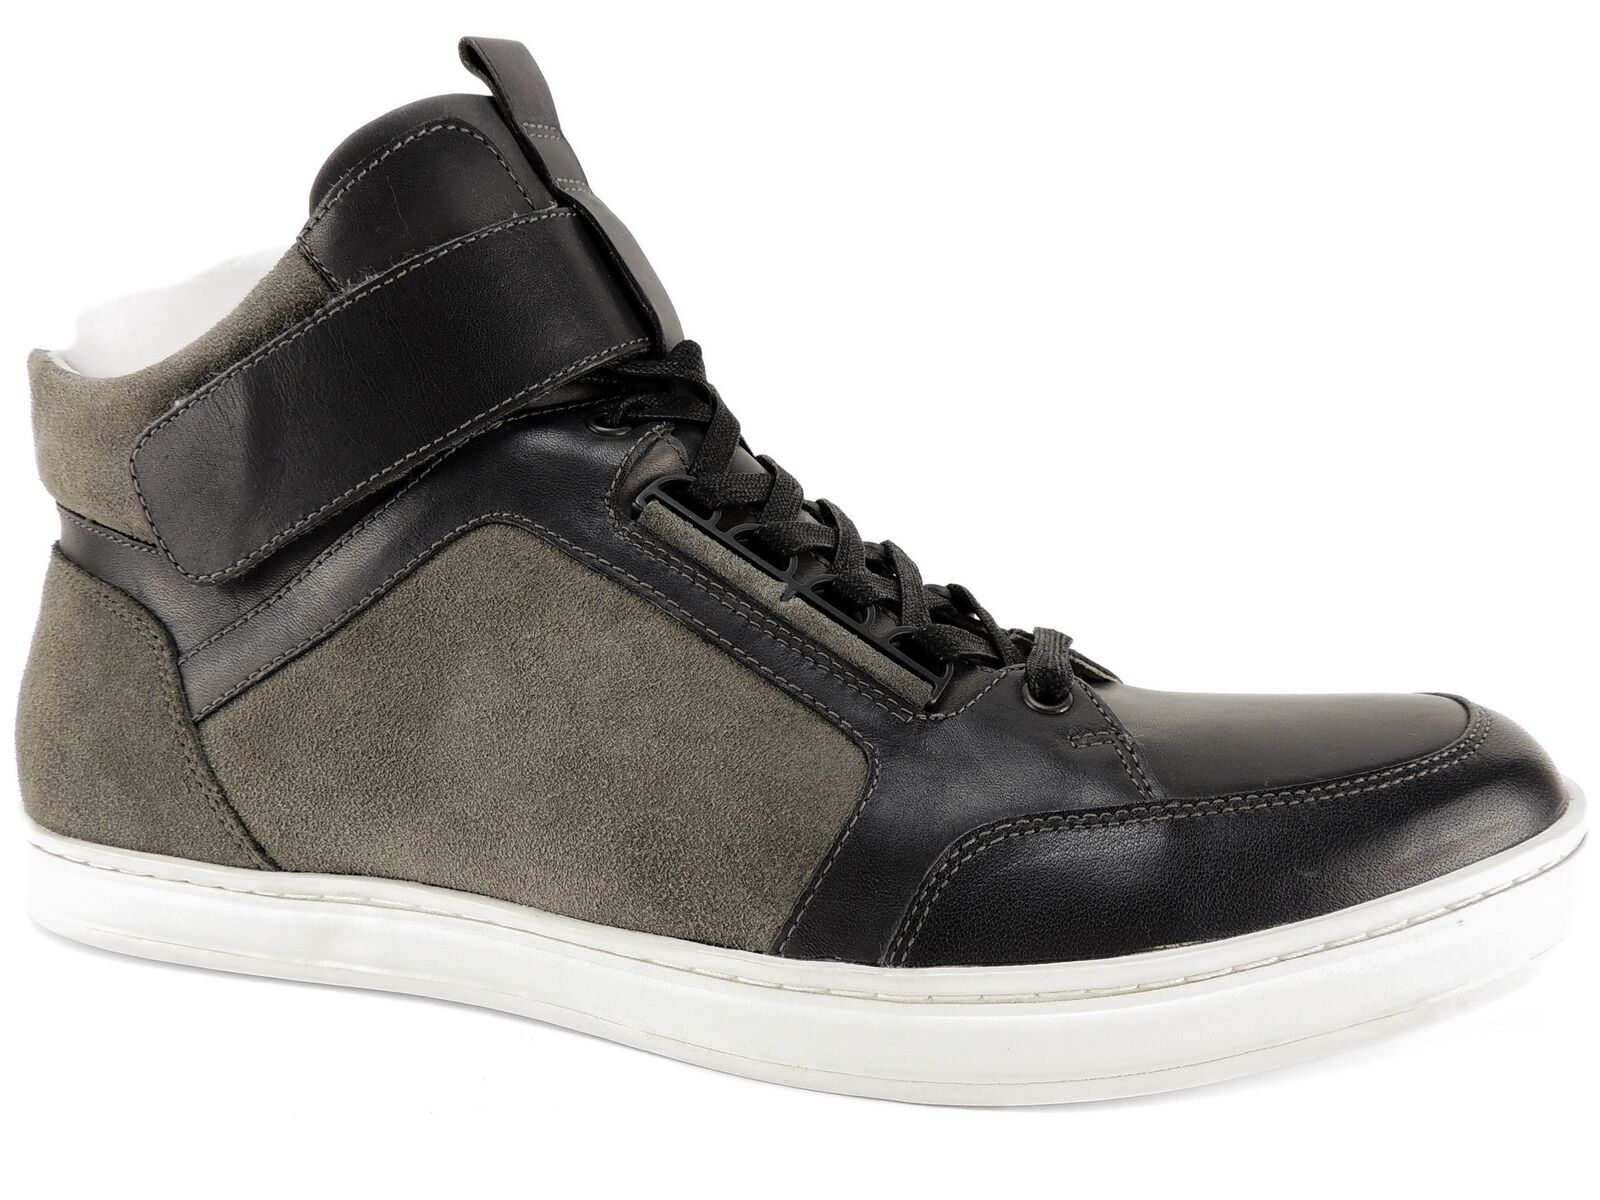 Kenneth Cole New York Men's Brandy High-Top Sneakers Grey Size 11 M